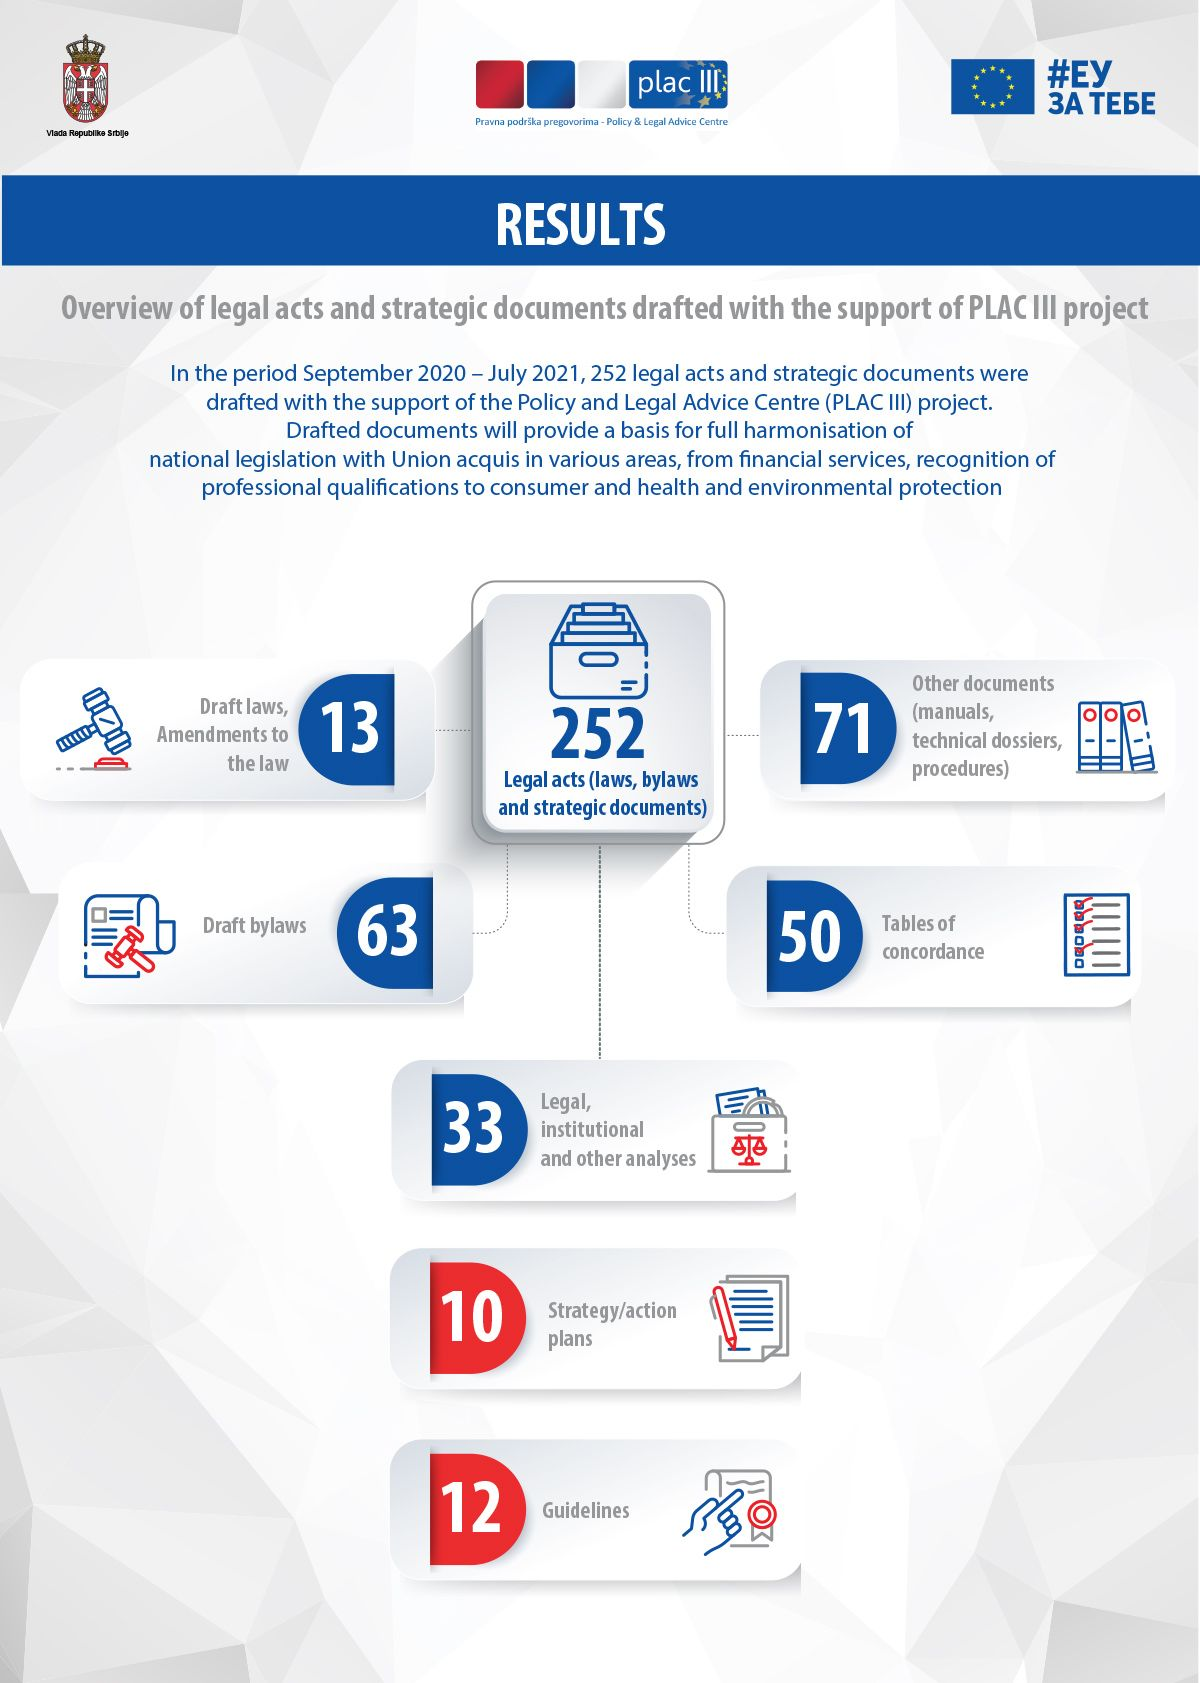 Infographic 5: Overview of legal acts and strategic documents drafted with the support of PLAC III project